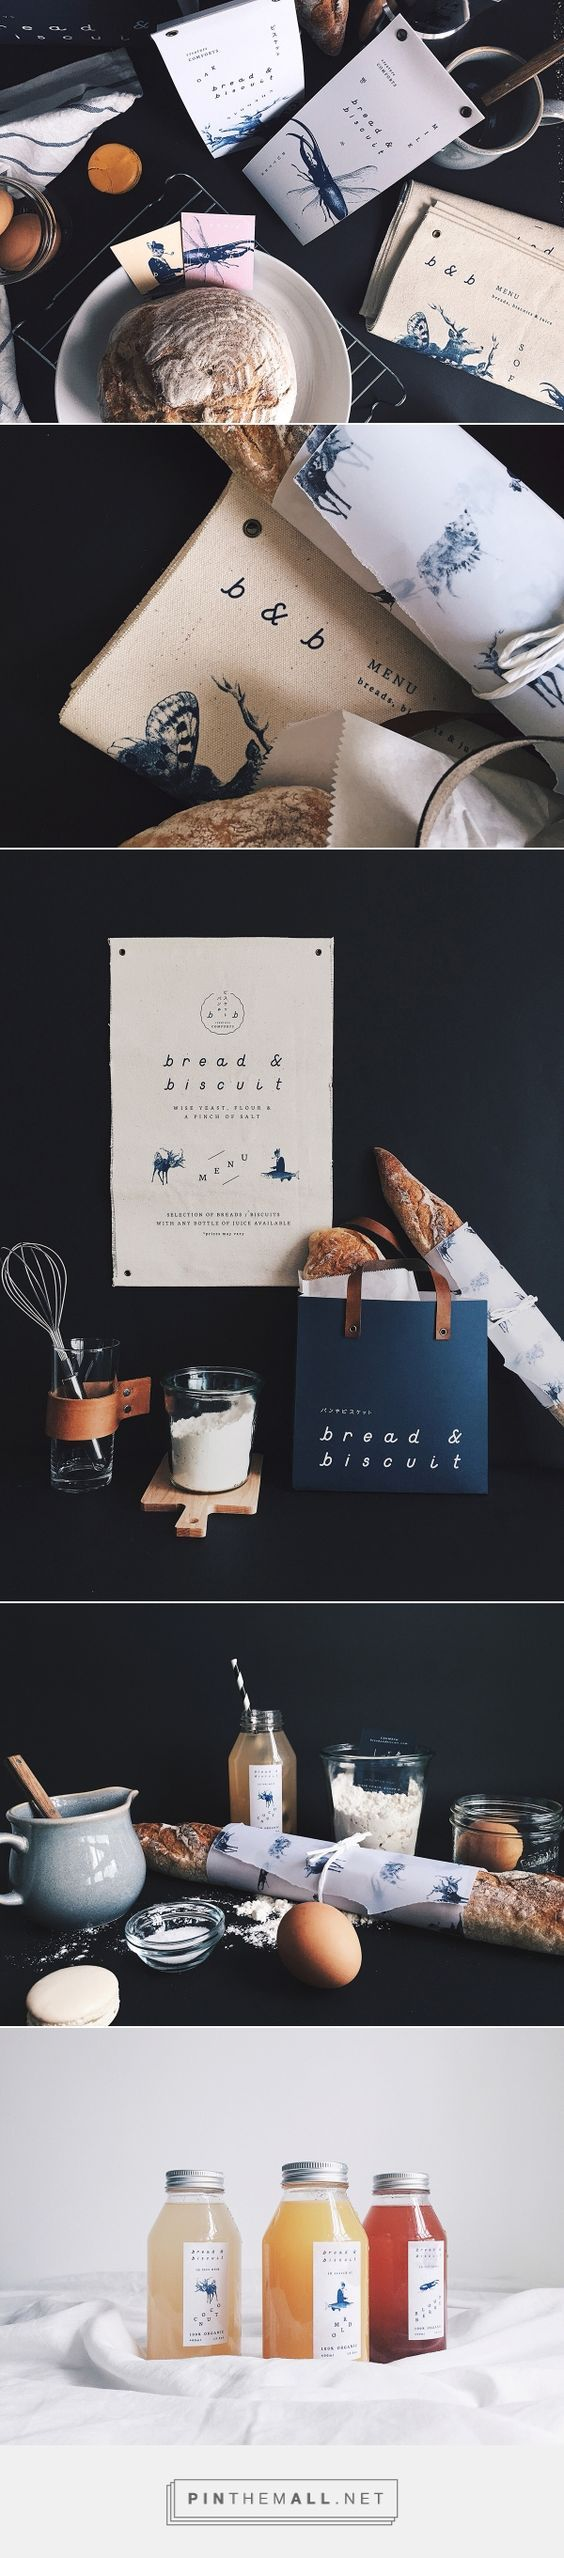 B&B Bread and Biscuit Branding on Behance | Fivestar Branding – Design and Branding Agency & Inspiration Gallery